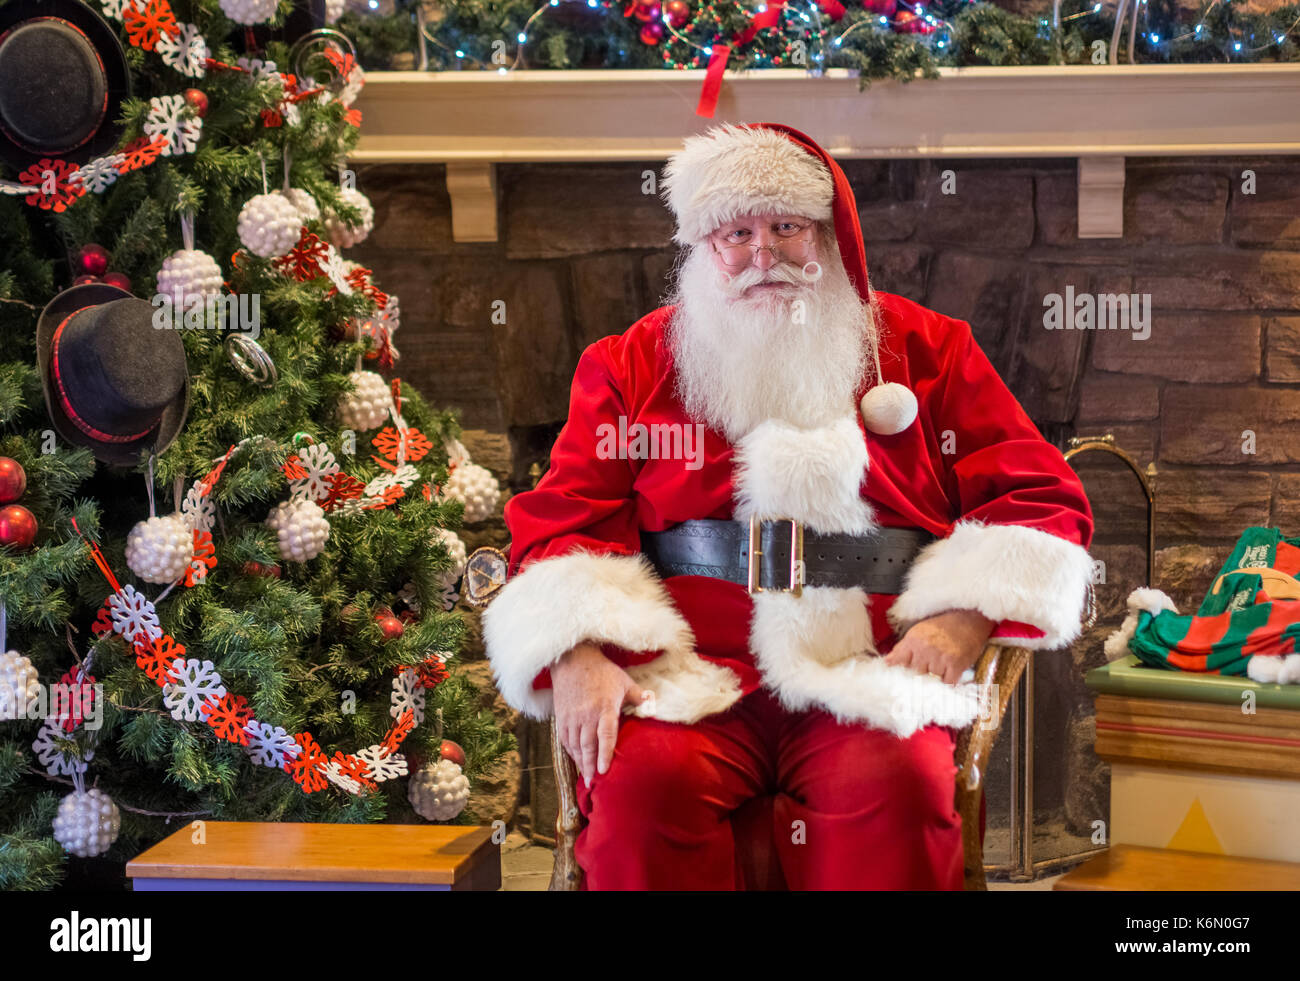 Sant waiting for kids to get their holiday shot clicked in an indoor setting. The backdrop shows a decorated Christmas tree with ornaments on it. - Stock Image